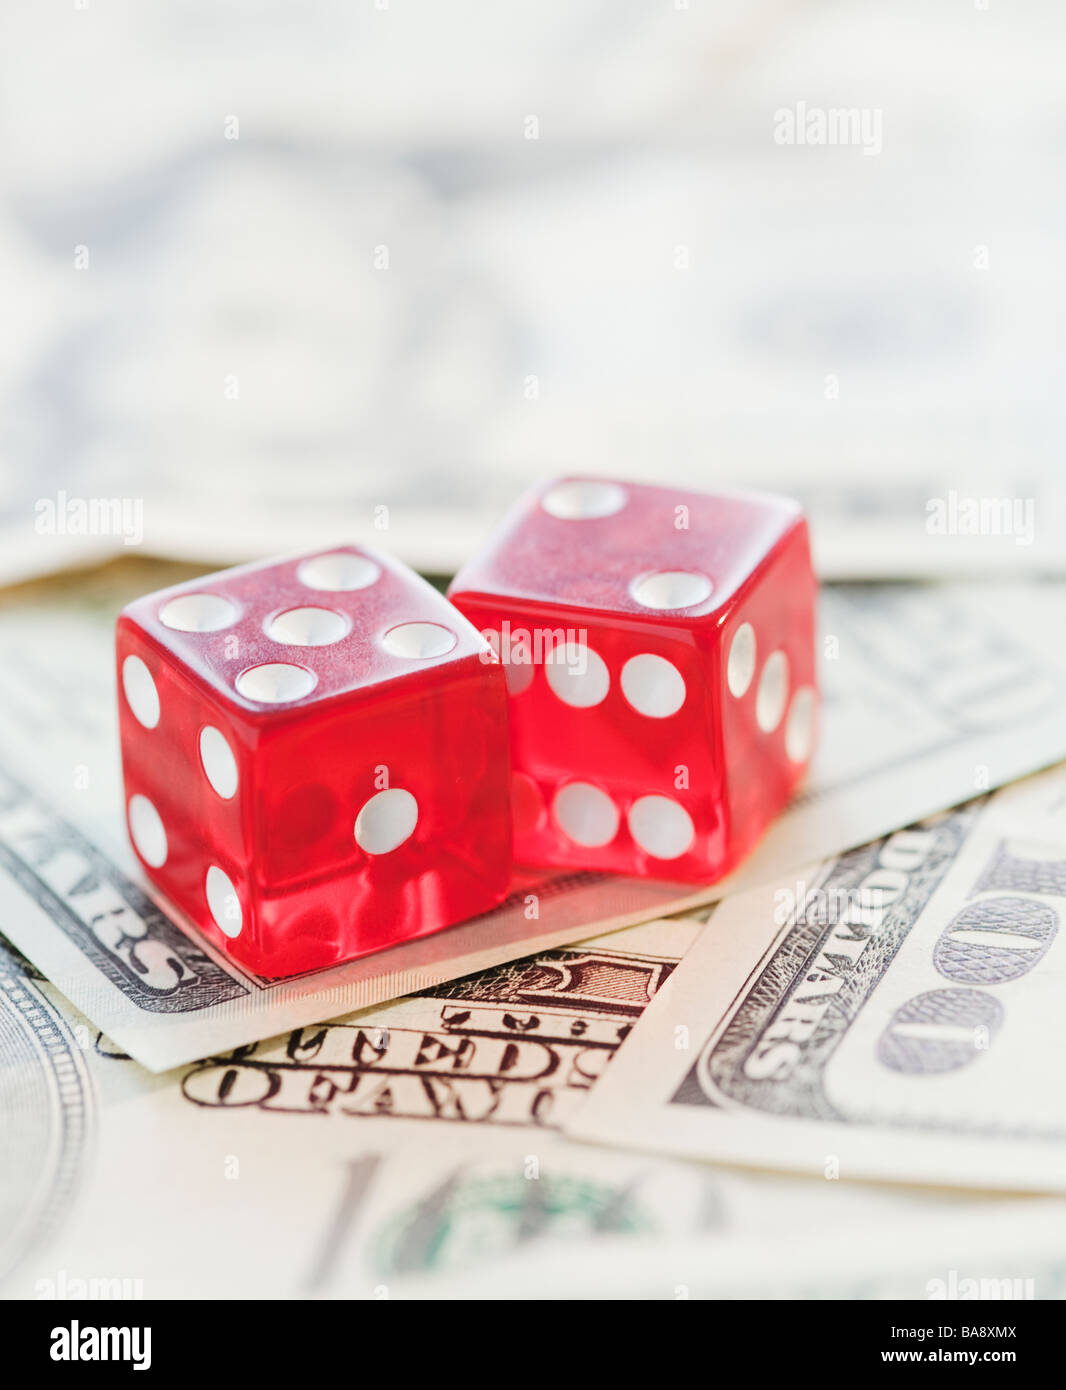 Dice on pile of money - Stock Image